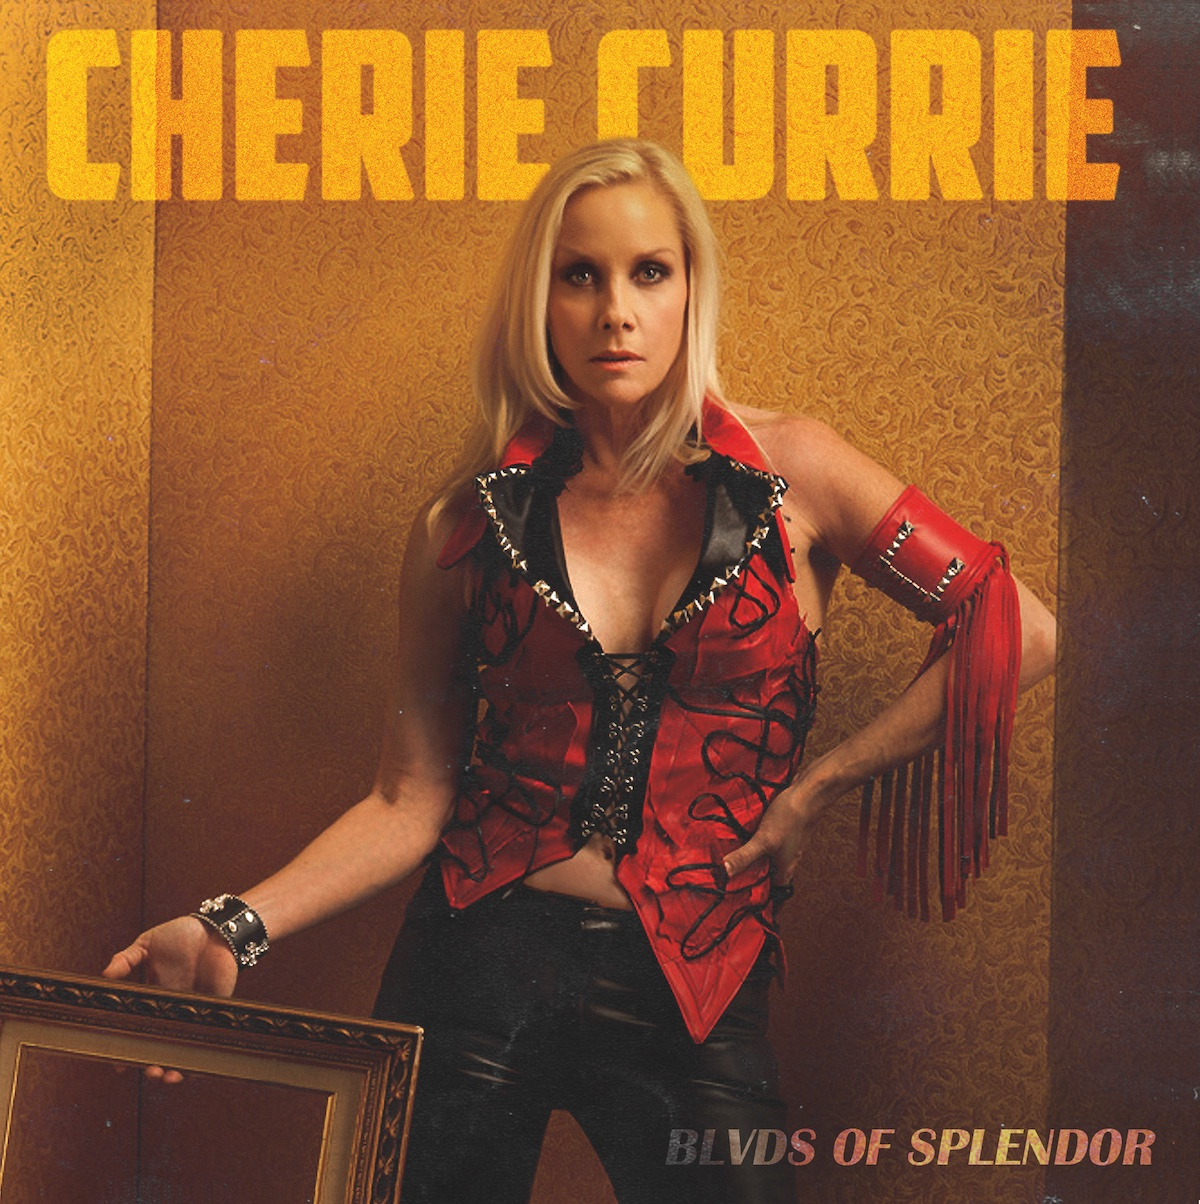 Cherie Currie Blvds of Splendor